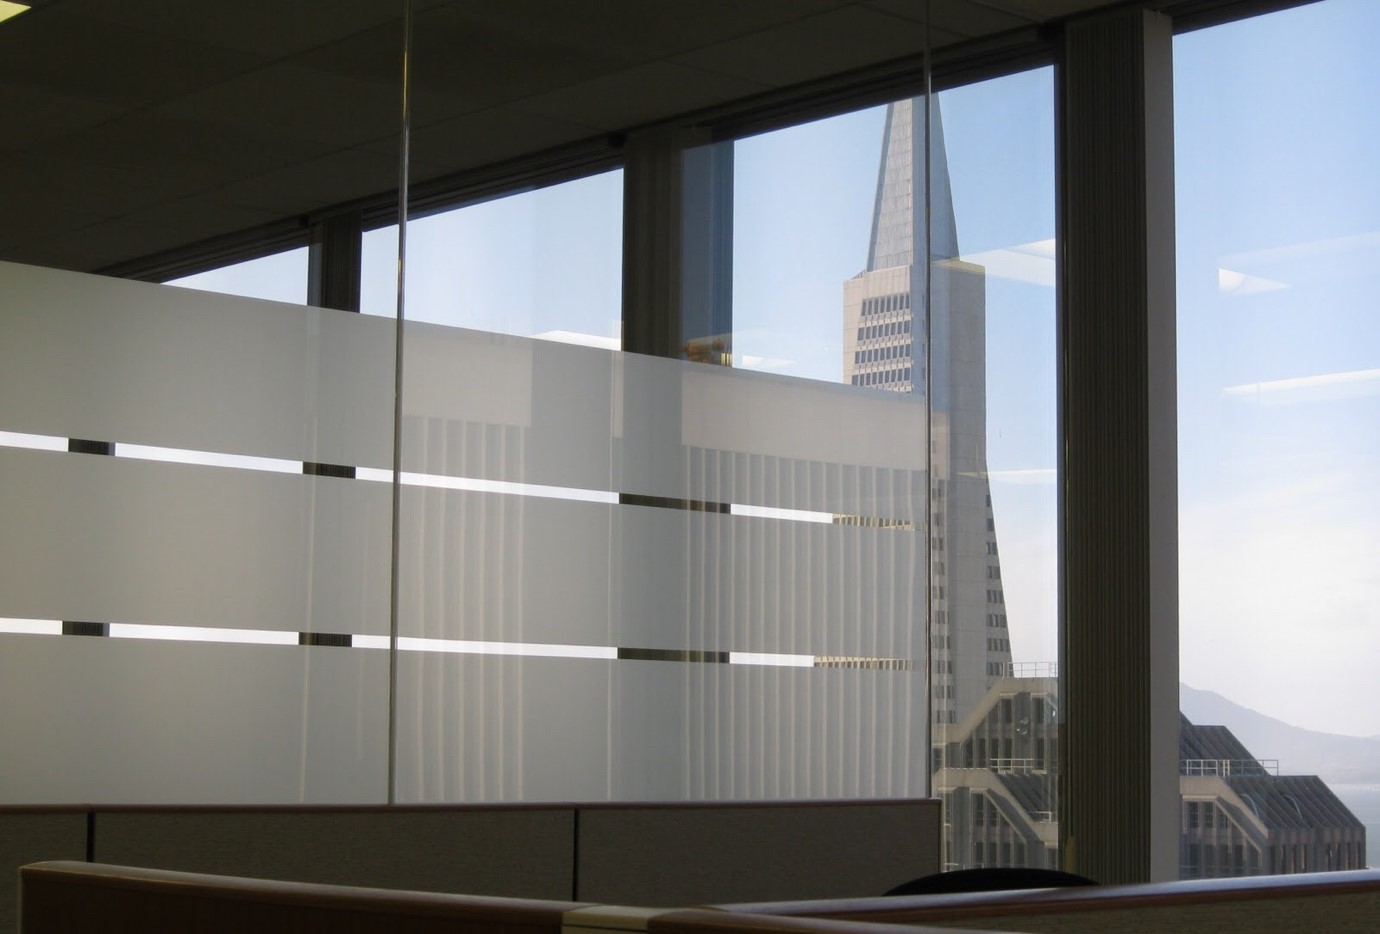 Frosted Window Films - Solution For Your Privacy & Security Concerns